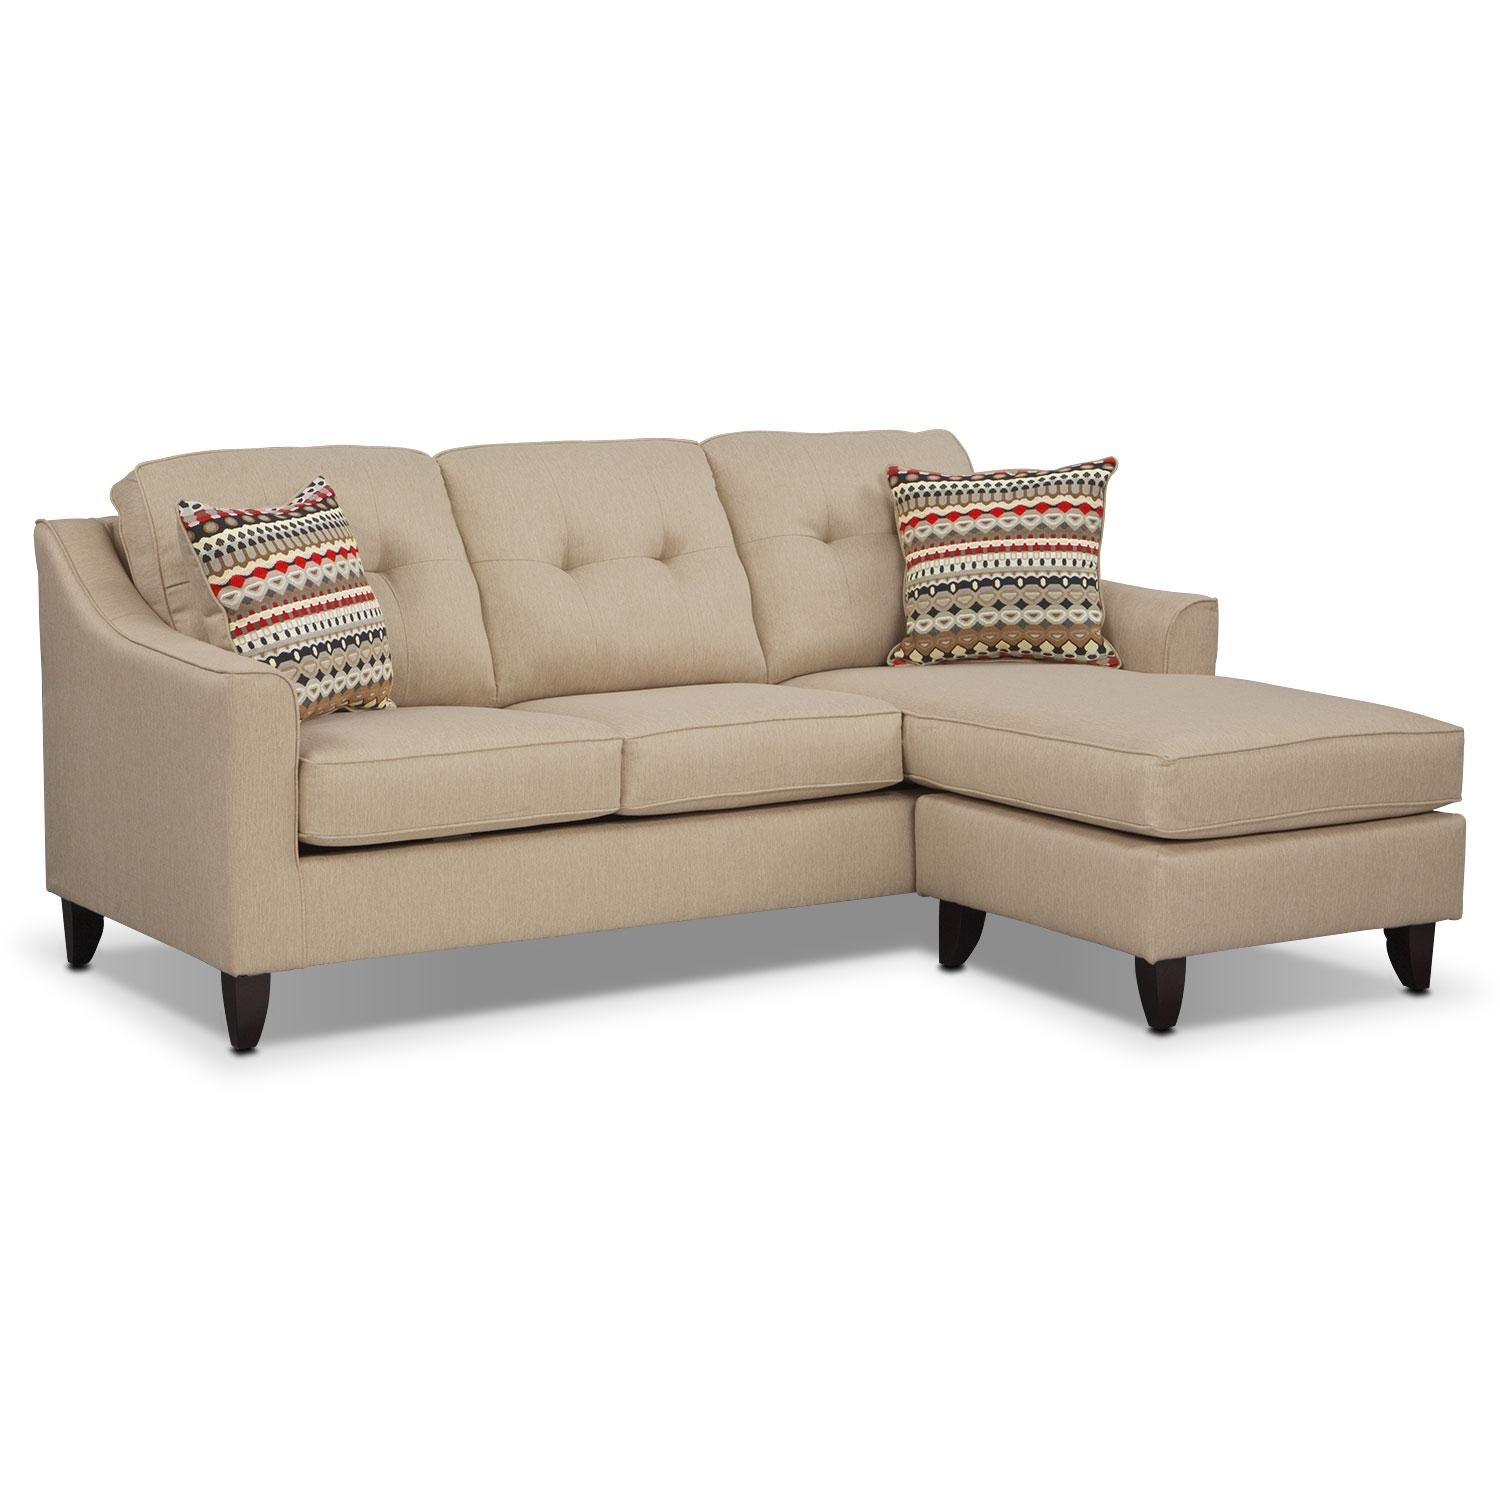 Sofas Indianapolis 58 With Sofas Indianapolis | Jinanhongyu Within Sofas Indianapolis (Image 17 of 20)